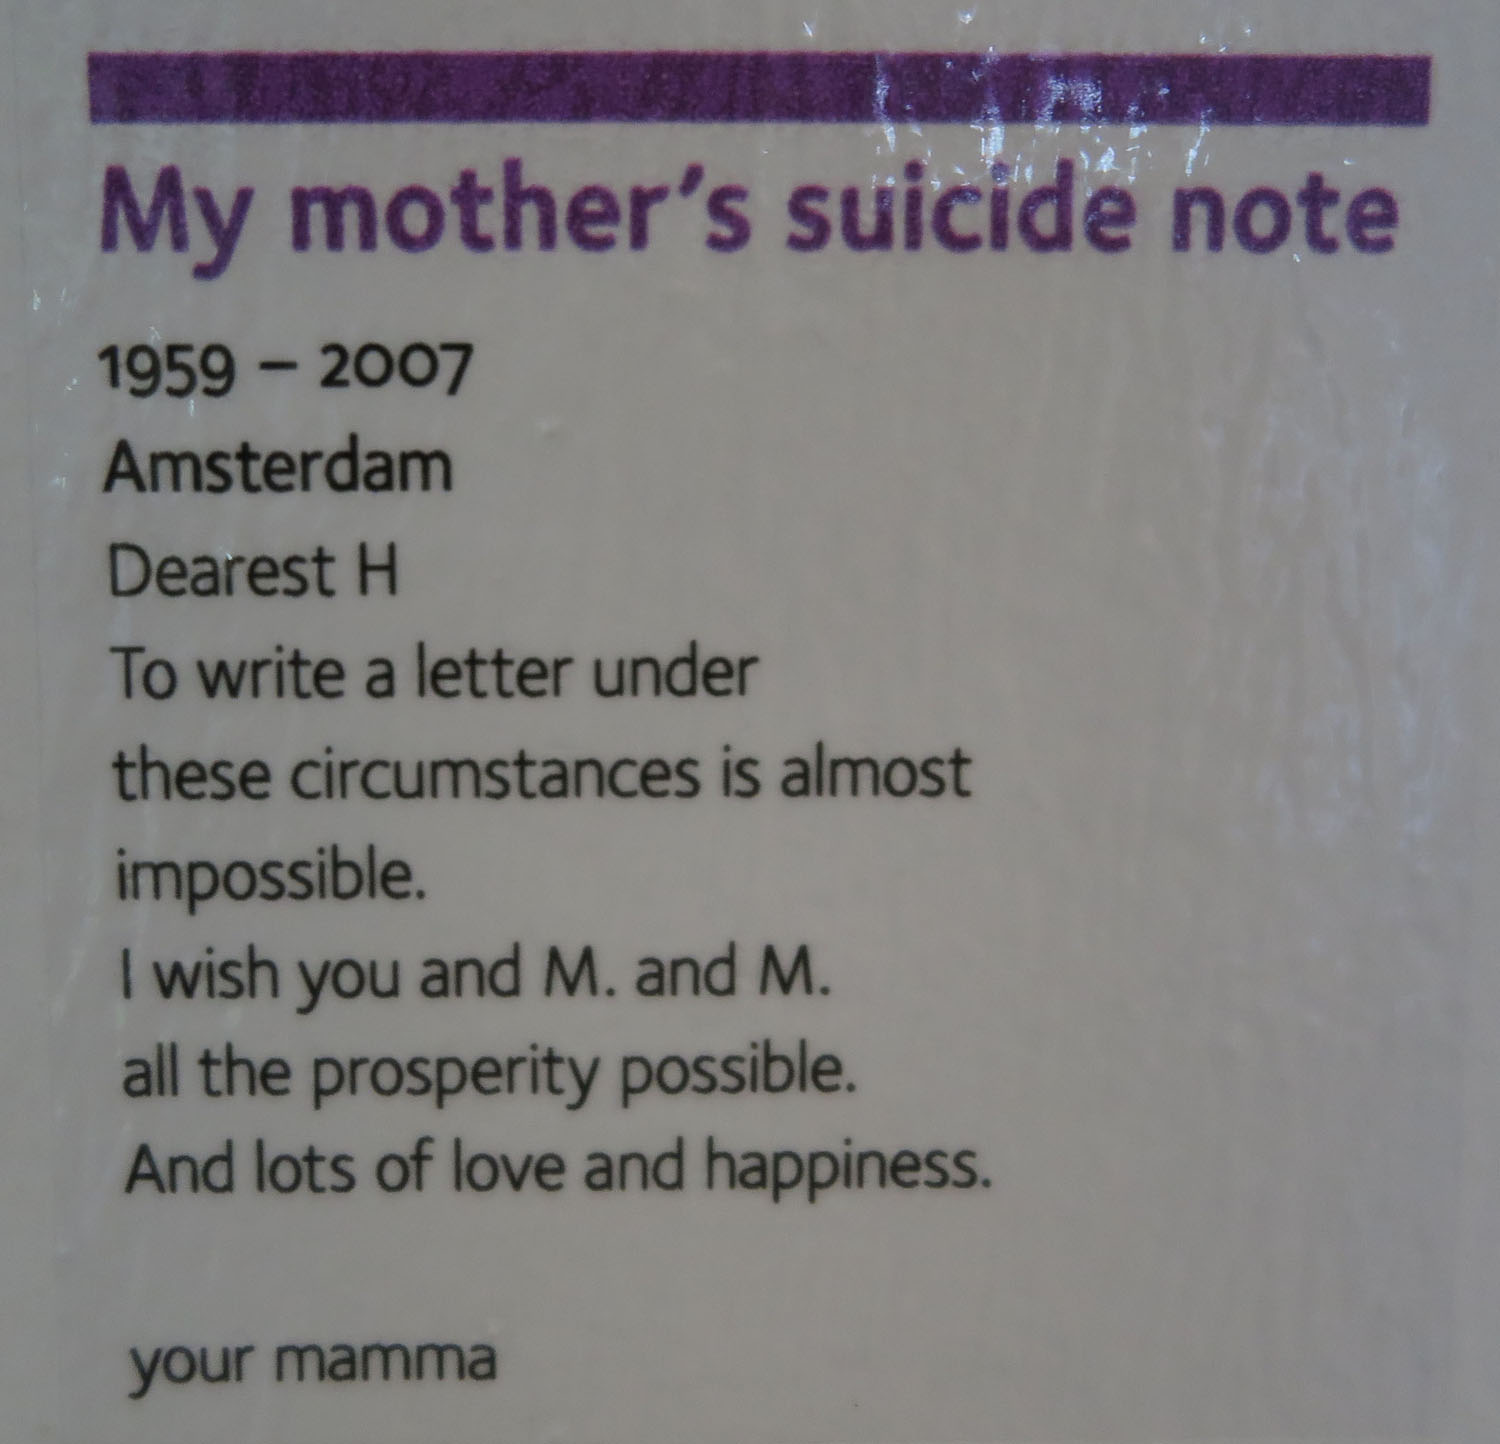 croatia-zagreb-museum-of-broken-relationships-suicide-note